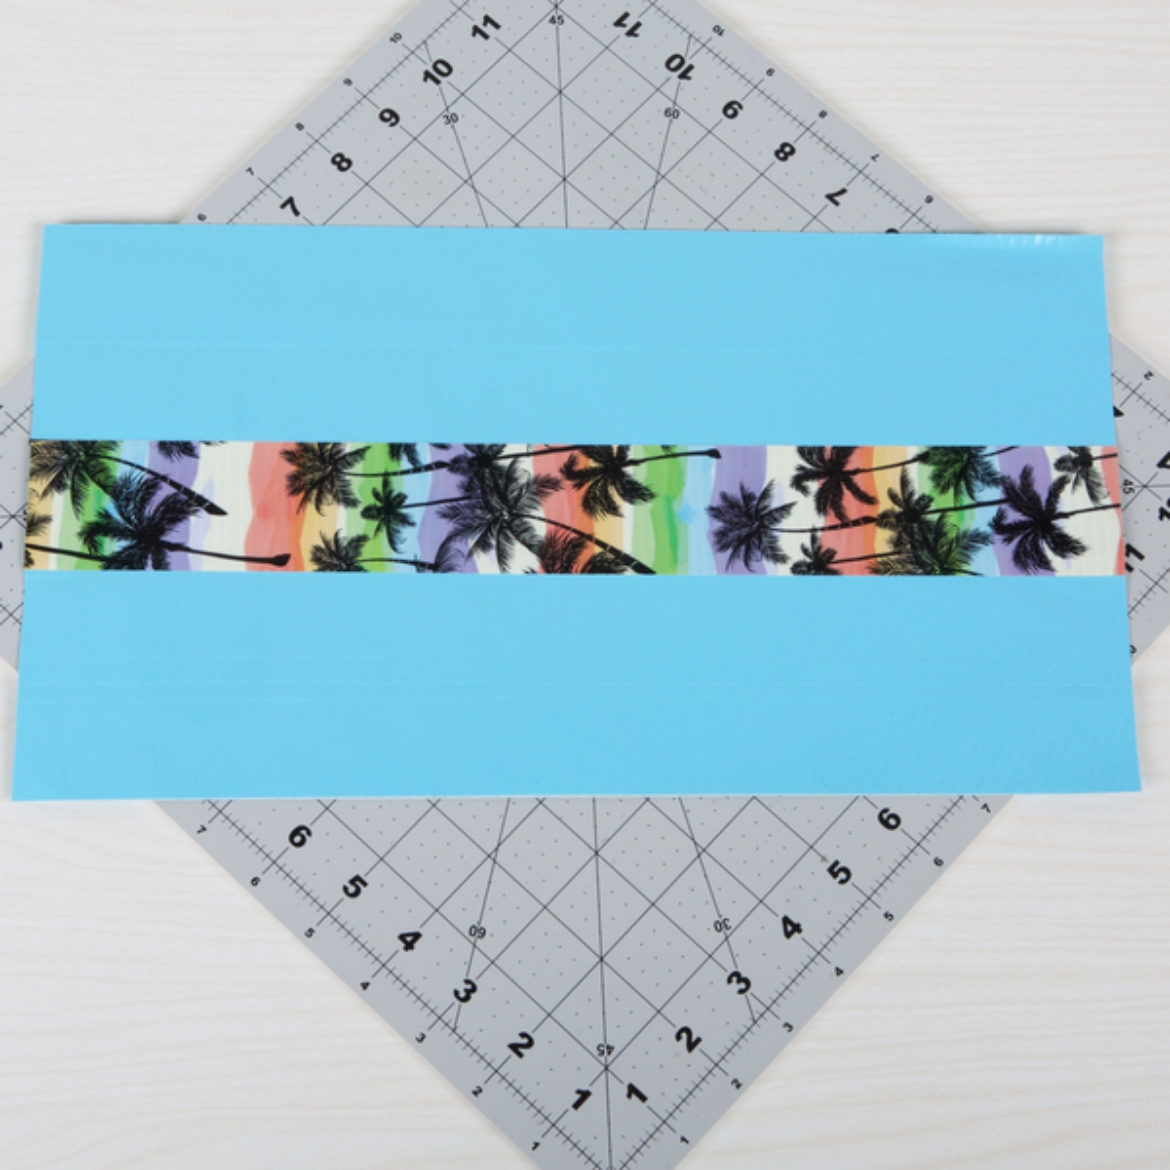 Design strip of Tape affixed to the center of the fabric